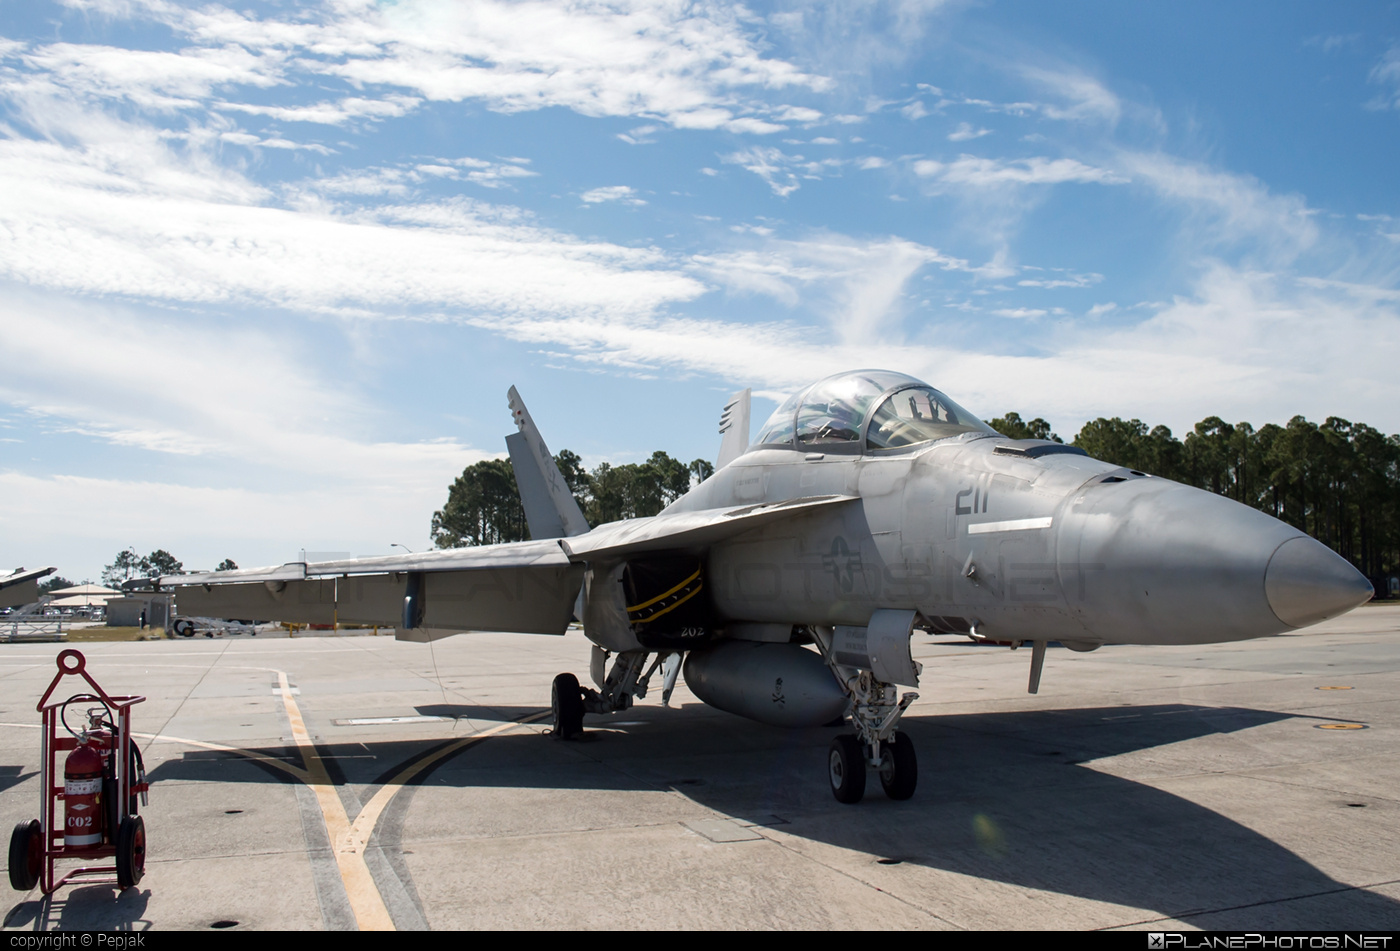 Boeing F/A-18F Super Hornet - 166611 operated by US Navy (USN) #boeing #f18 #f18hornet #f18superhornet #fa18 #fa18f #fa18superhornet #superhornet